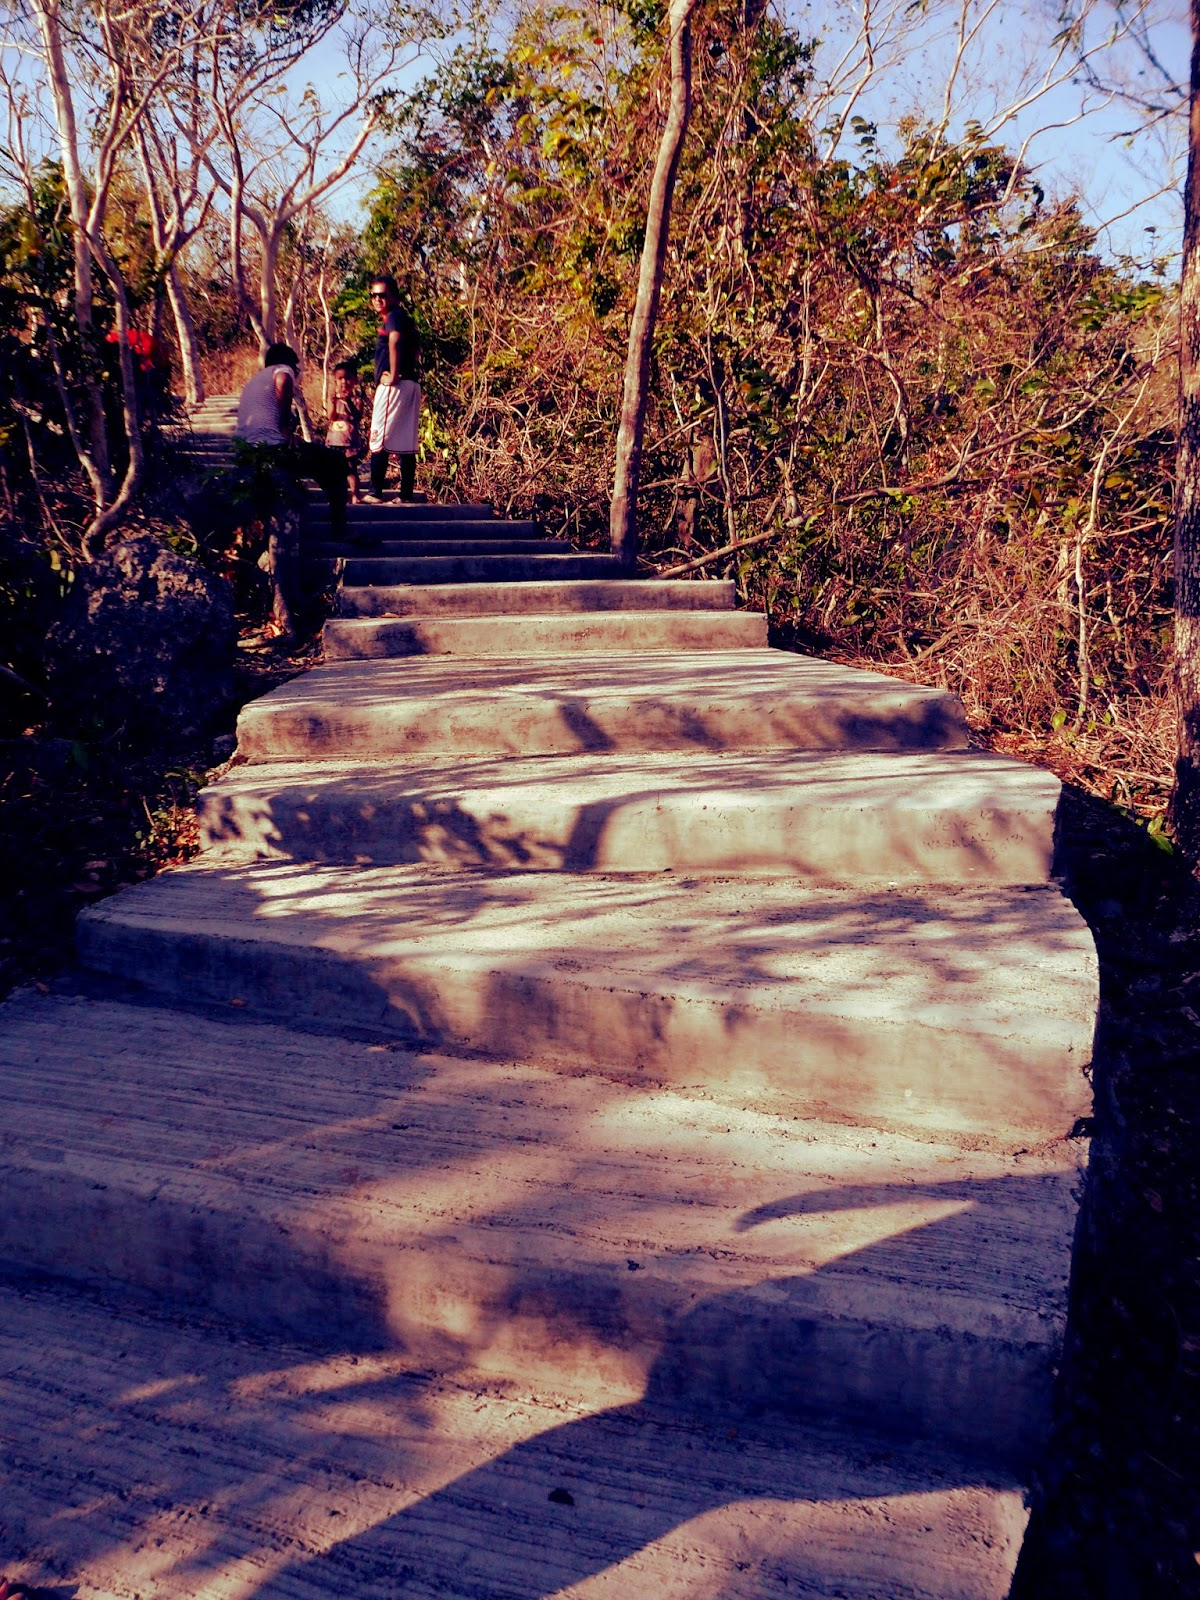 1000 steps at Minalungao National Park